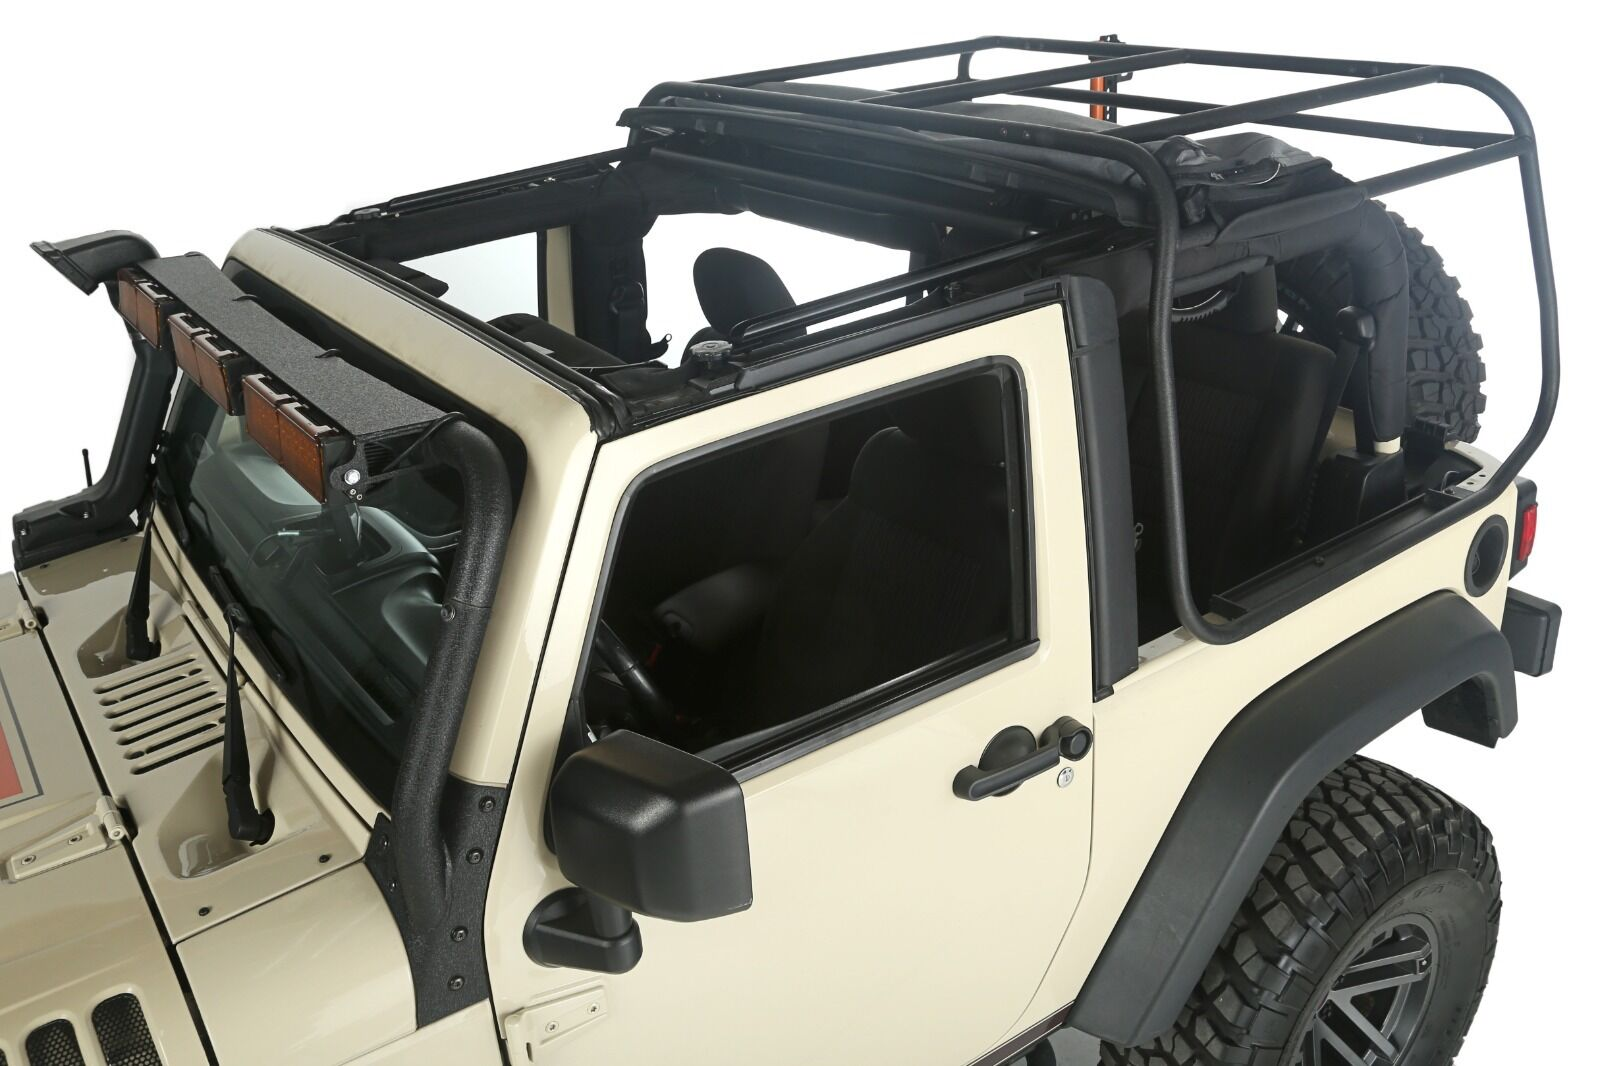 Exo Top Soft Top Amp Roof Rack For Jeep Wrangler Jk 07 18 2d